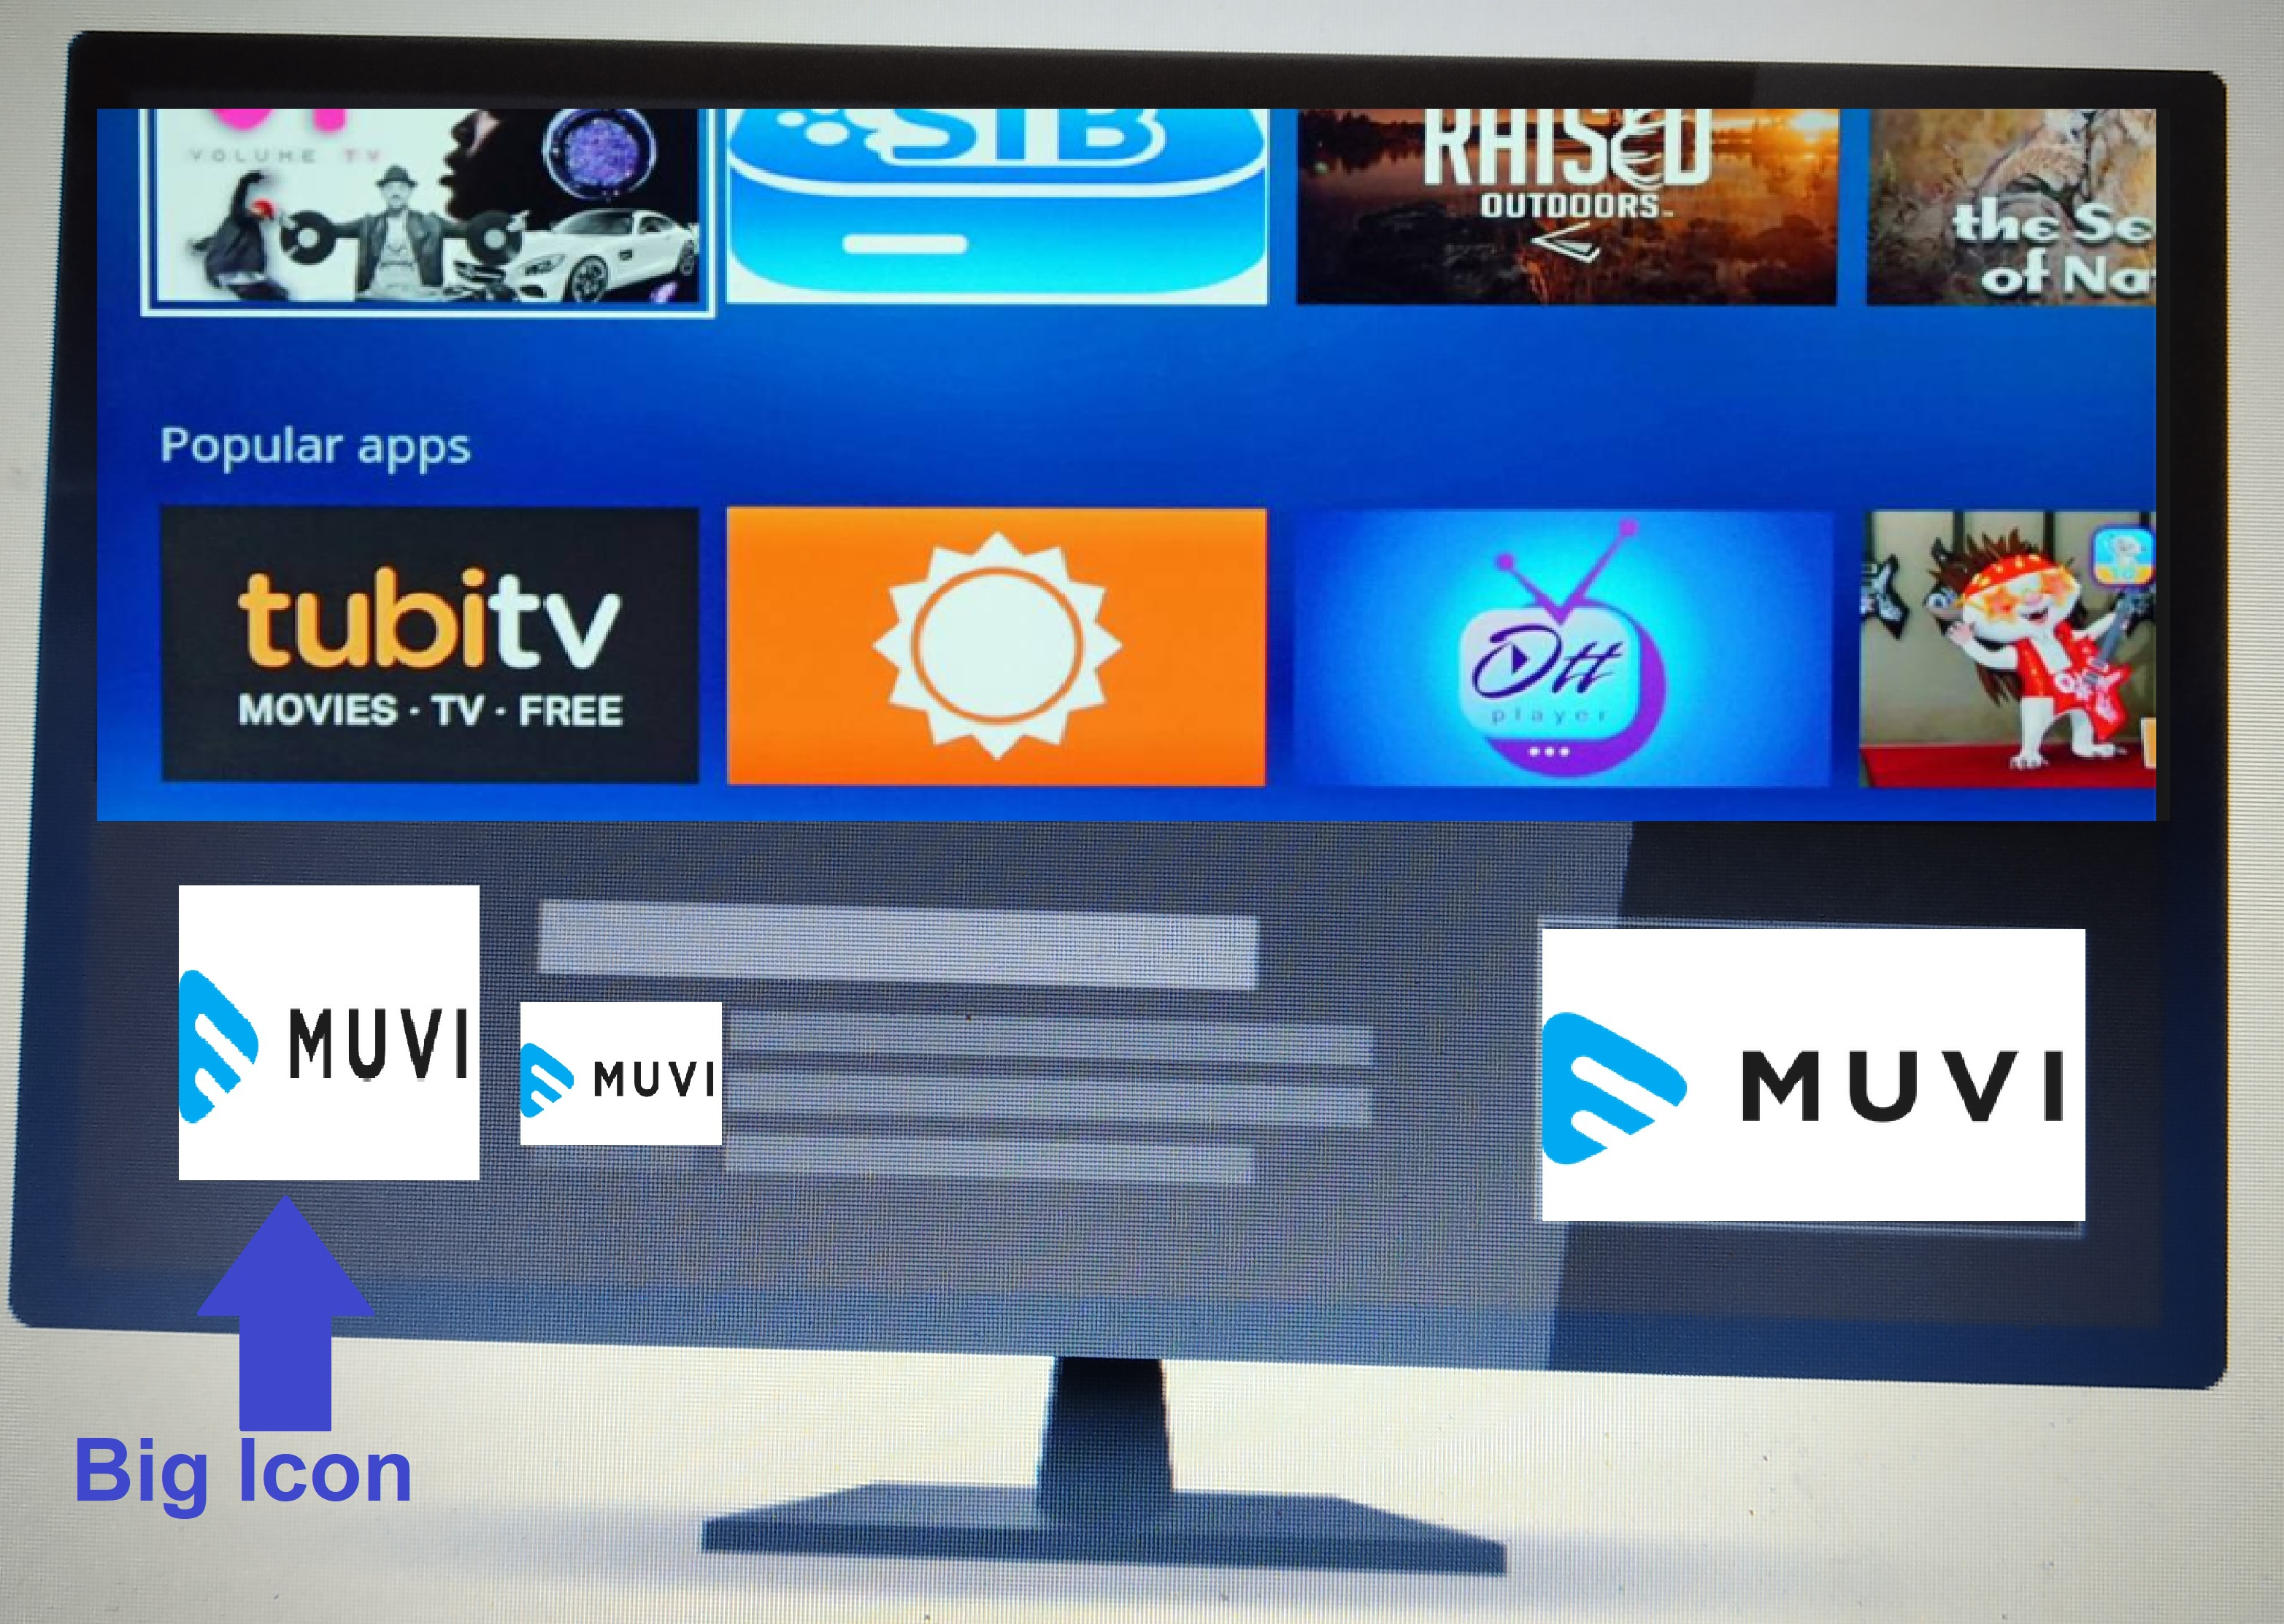 How Does Muvi Prepare Your Vewd TV App? - Muvi